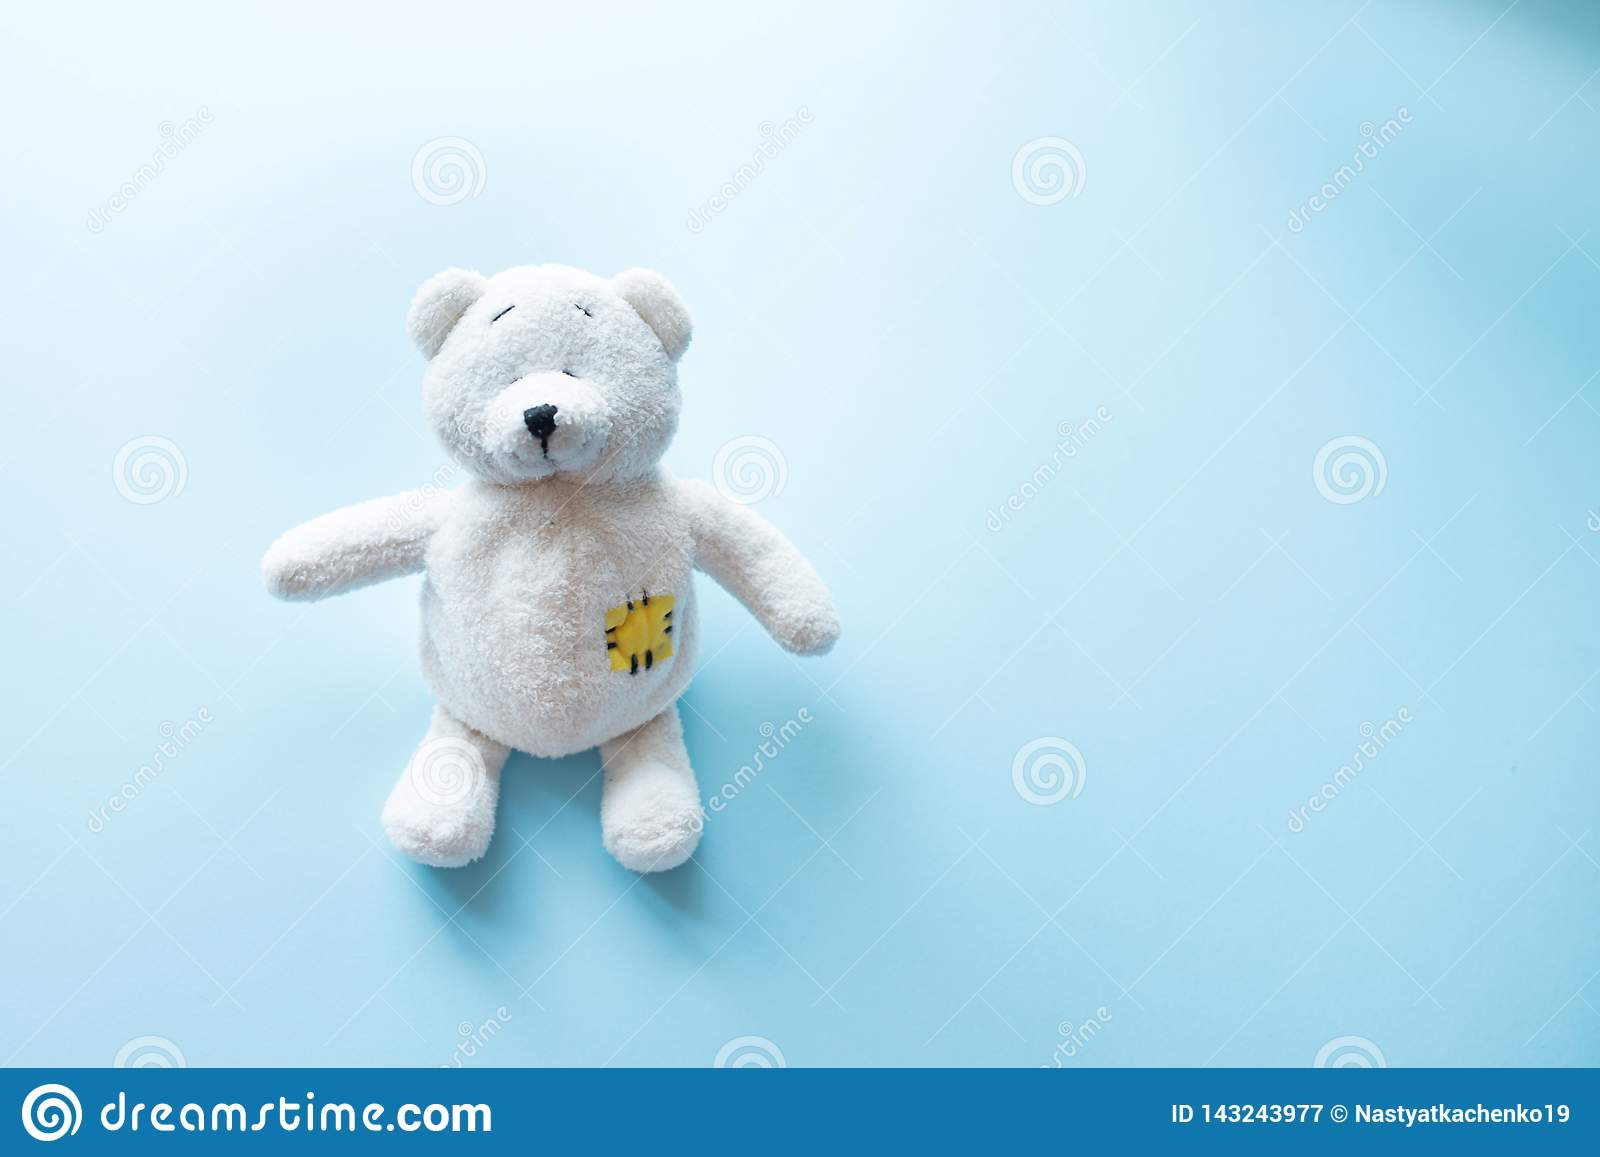 Cute white teddy bear child toy with visible upper body and open arms on blue background with copy space